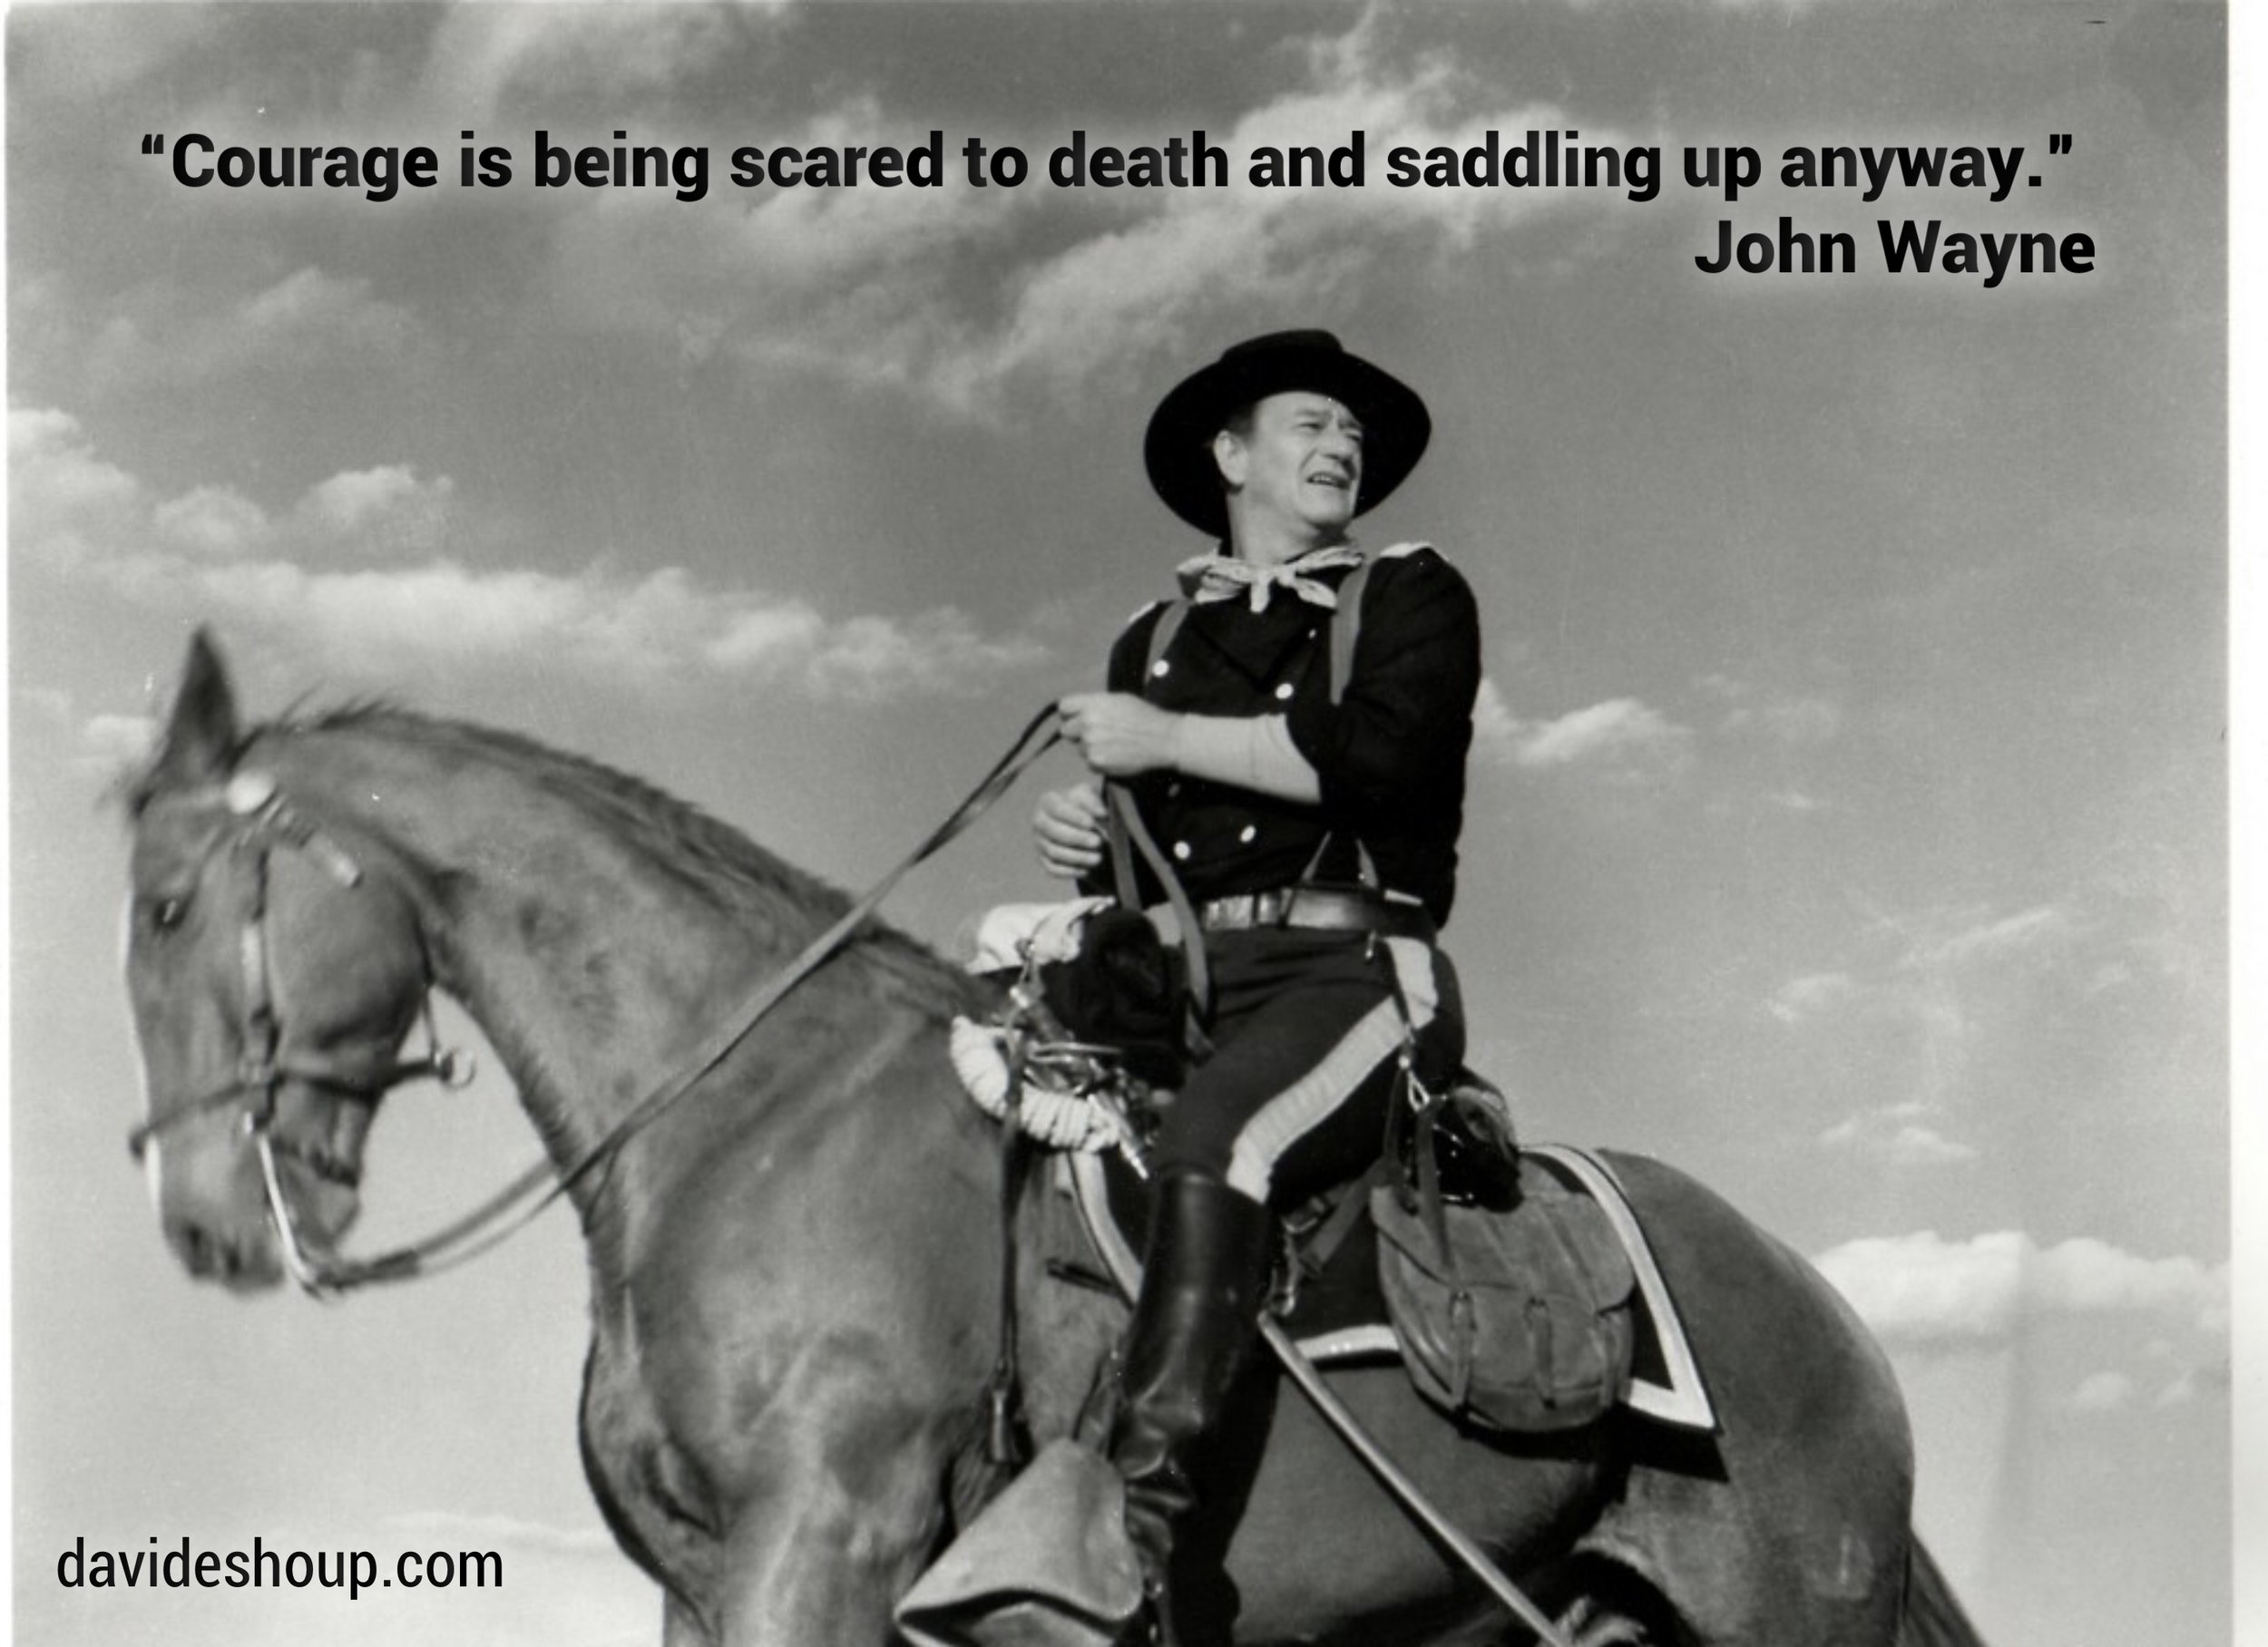 Courage - John Wayne.JPG